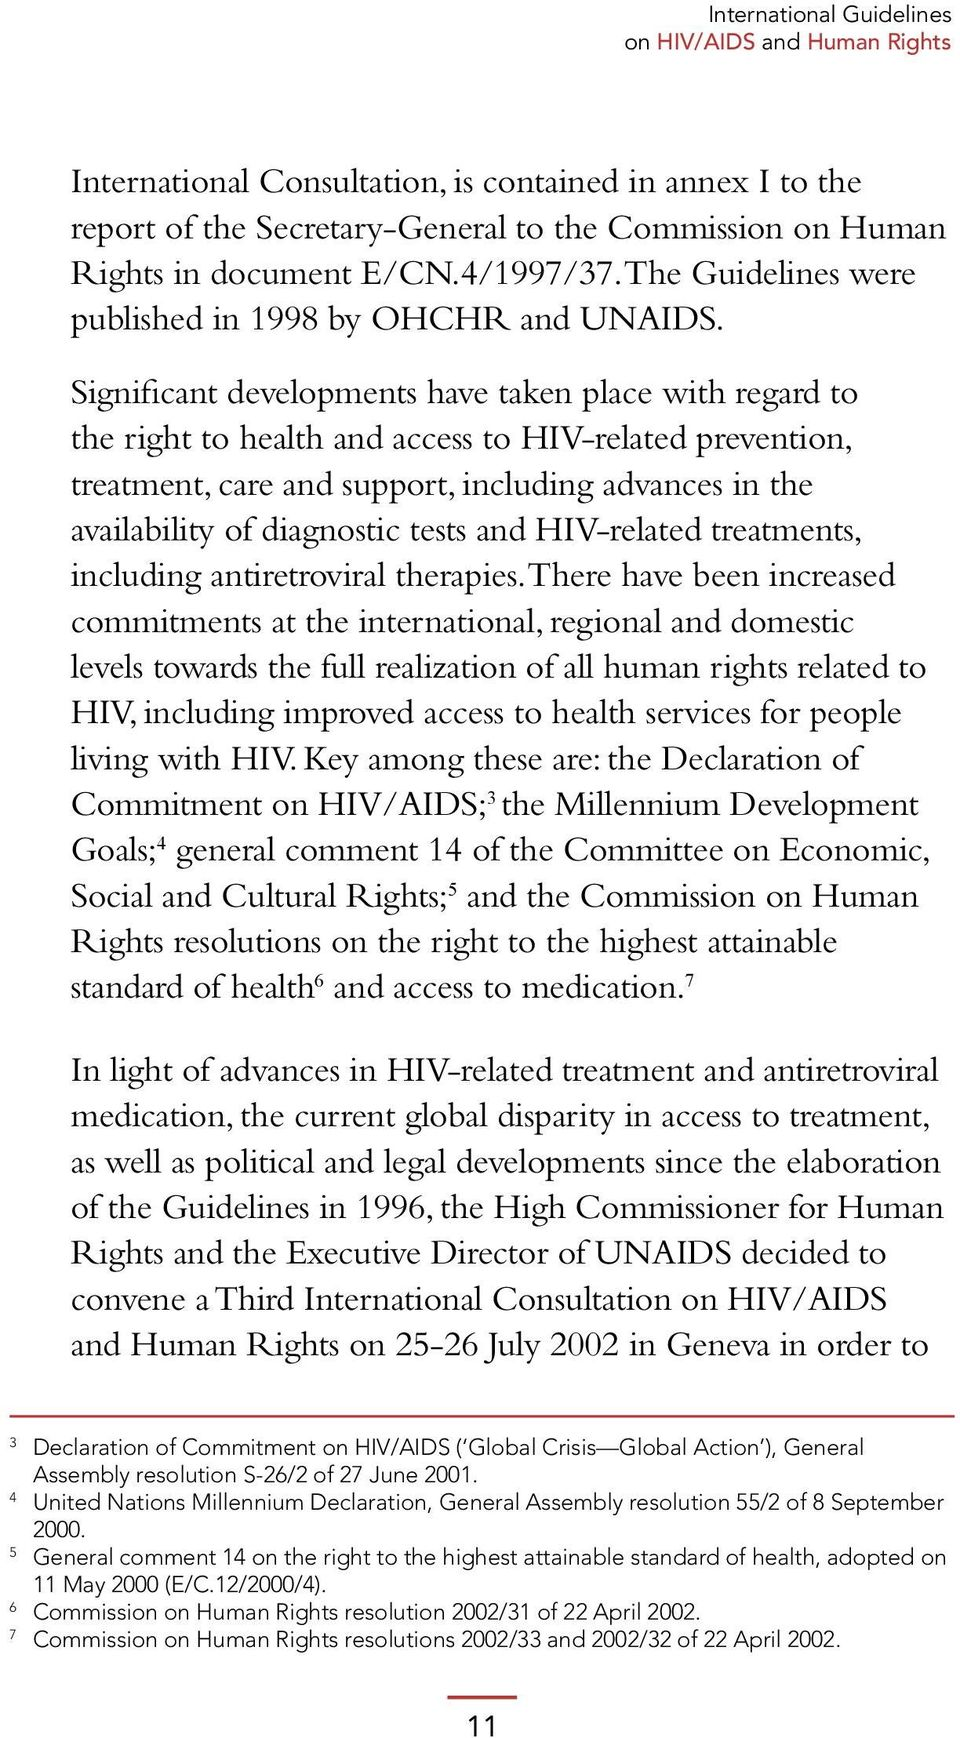 Significant developments have taken place with regard to the right to health and access to HIV-related prevention, treatment, care and support, including advances in the availability of diagnostic